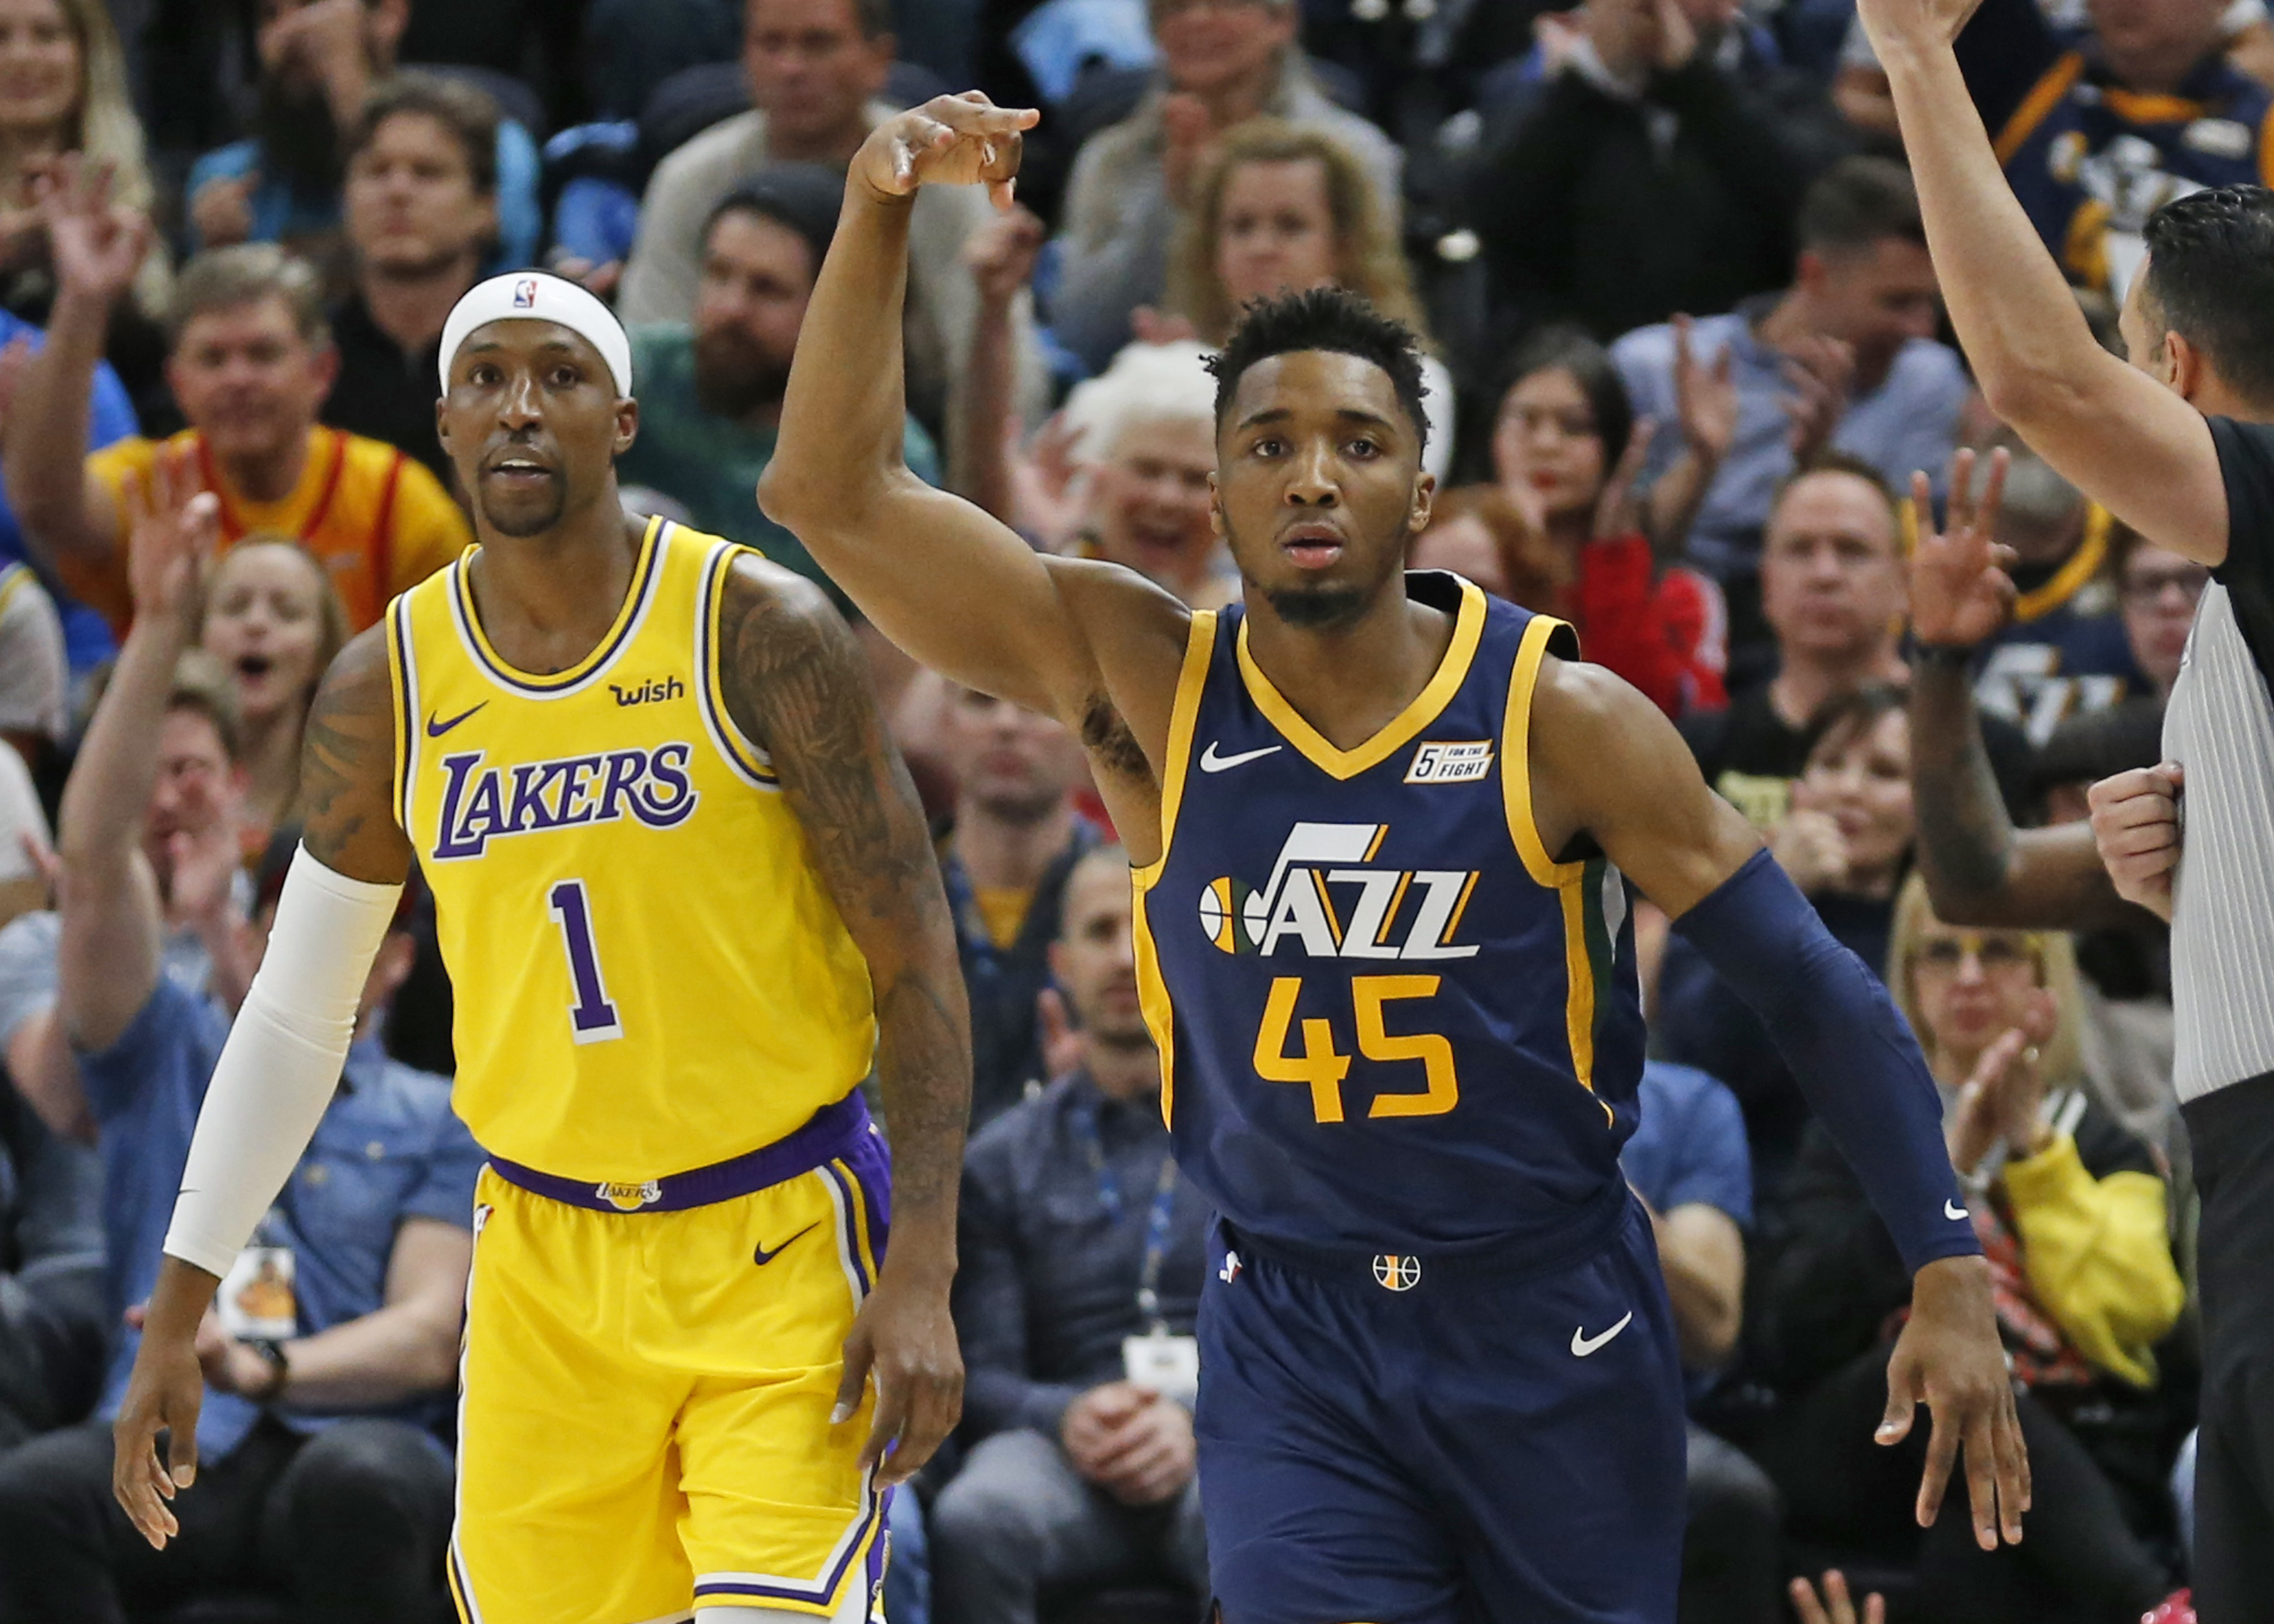 Gobert helps Jazz blow out Lakers 115-100 as LeBron sits